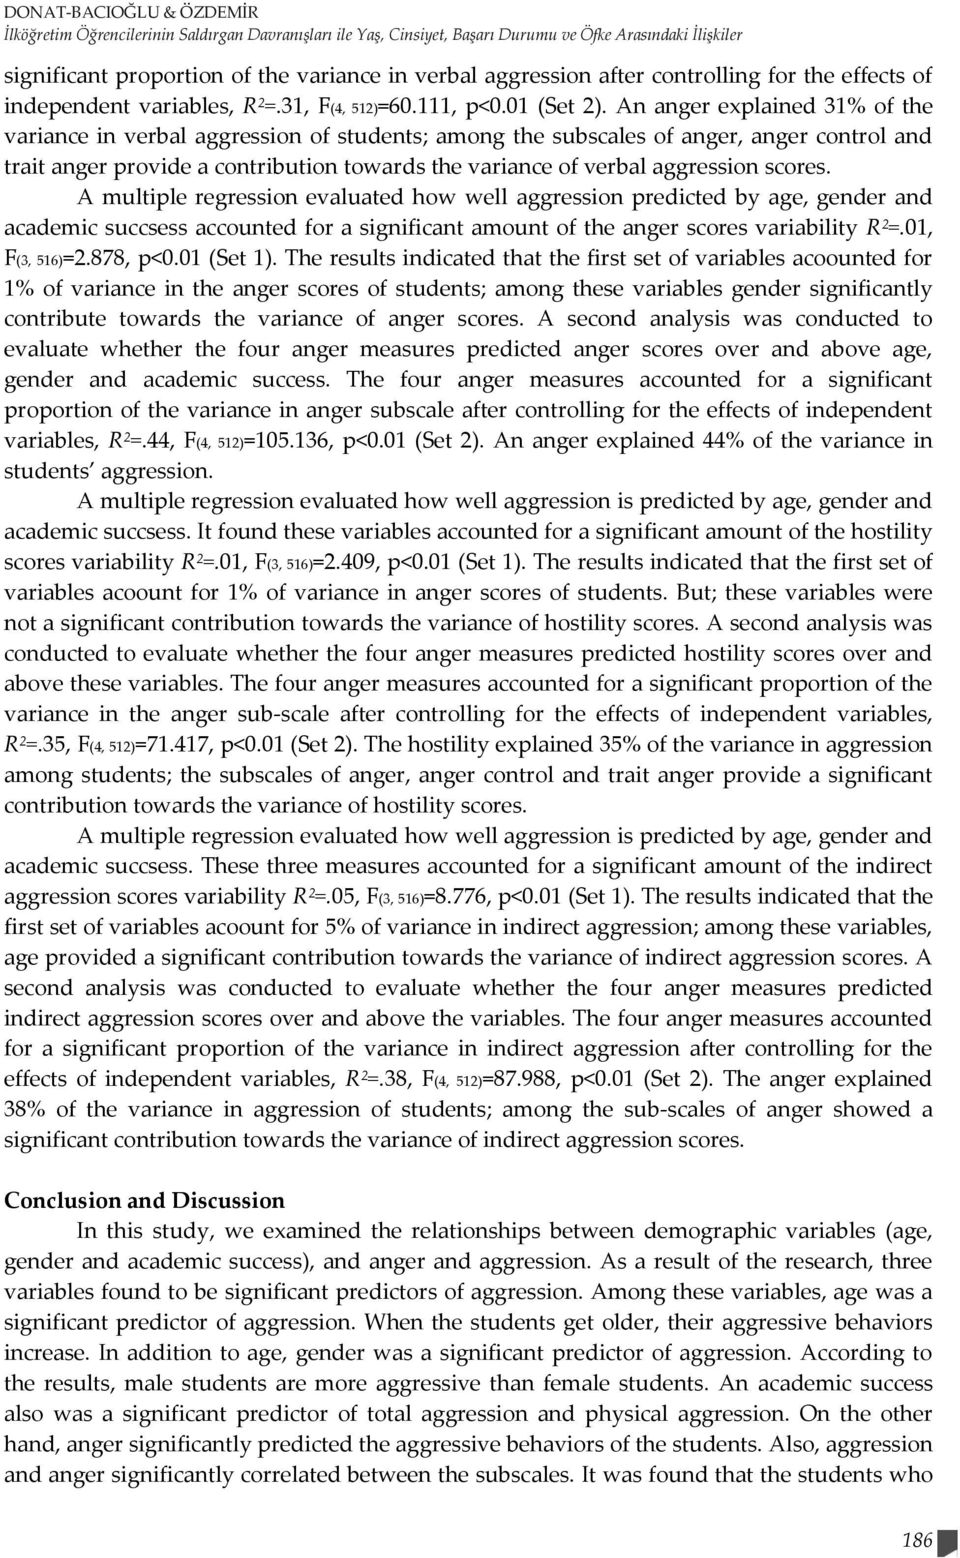 An anger explained 31% of the variance in verbal aggression of students; among the subscales of anger, anger control and trait anger provide a contribution towards the variance of verbal aggression